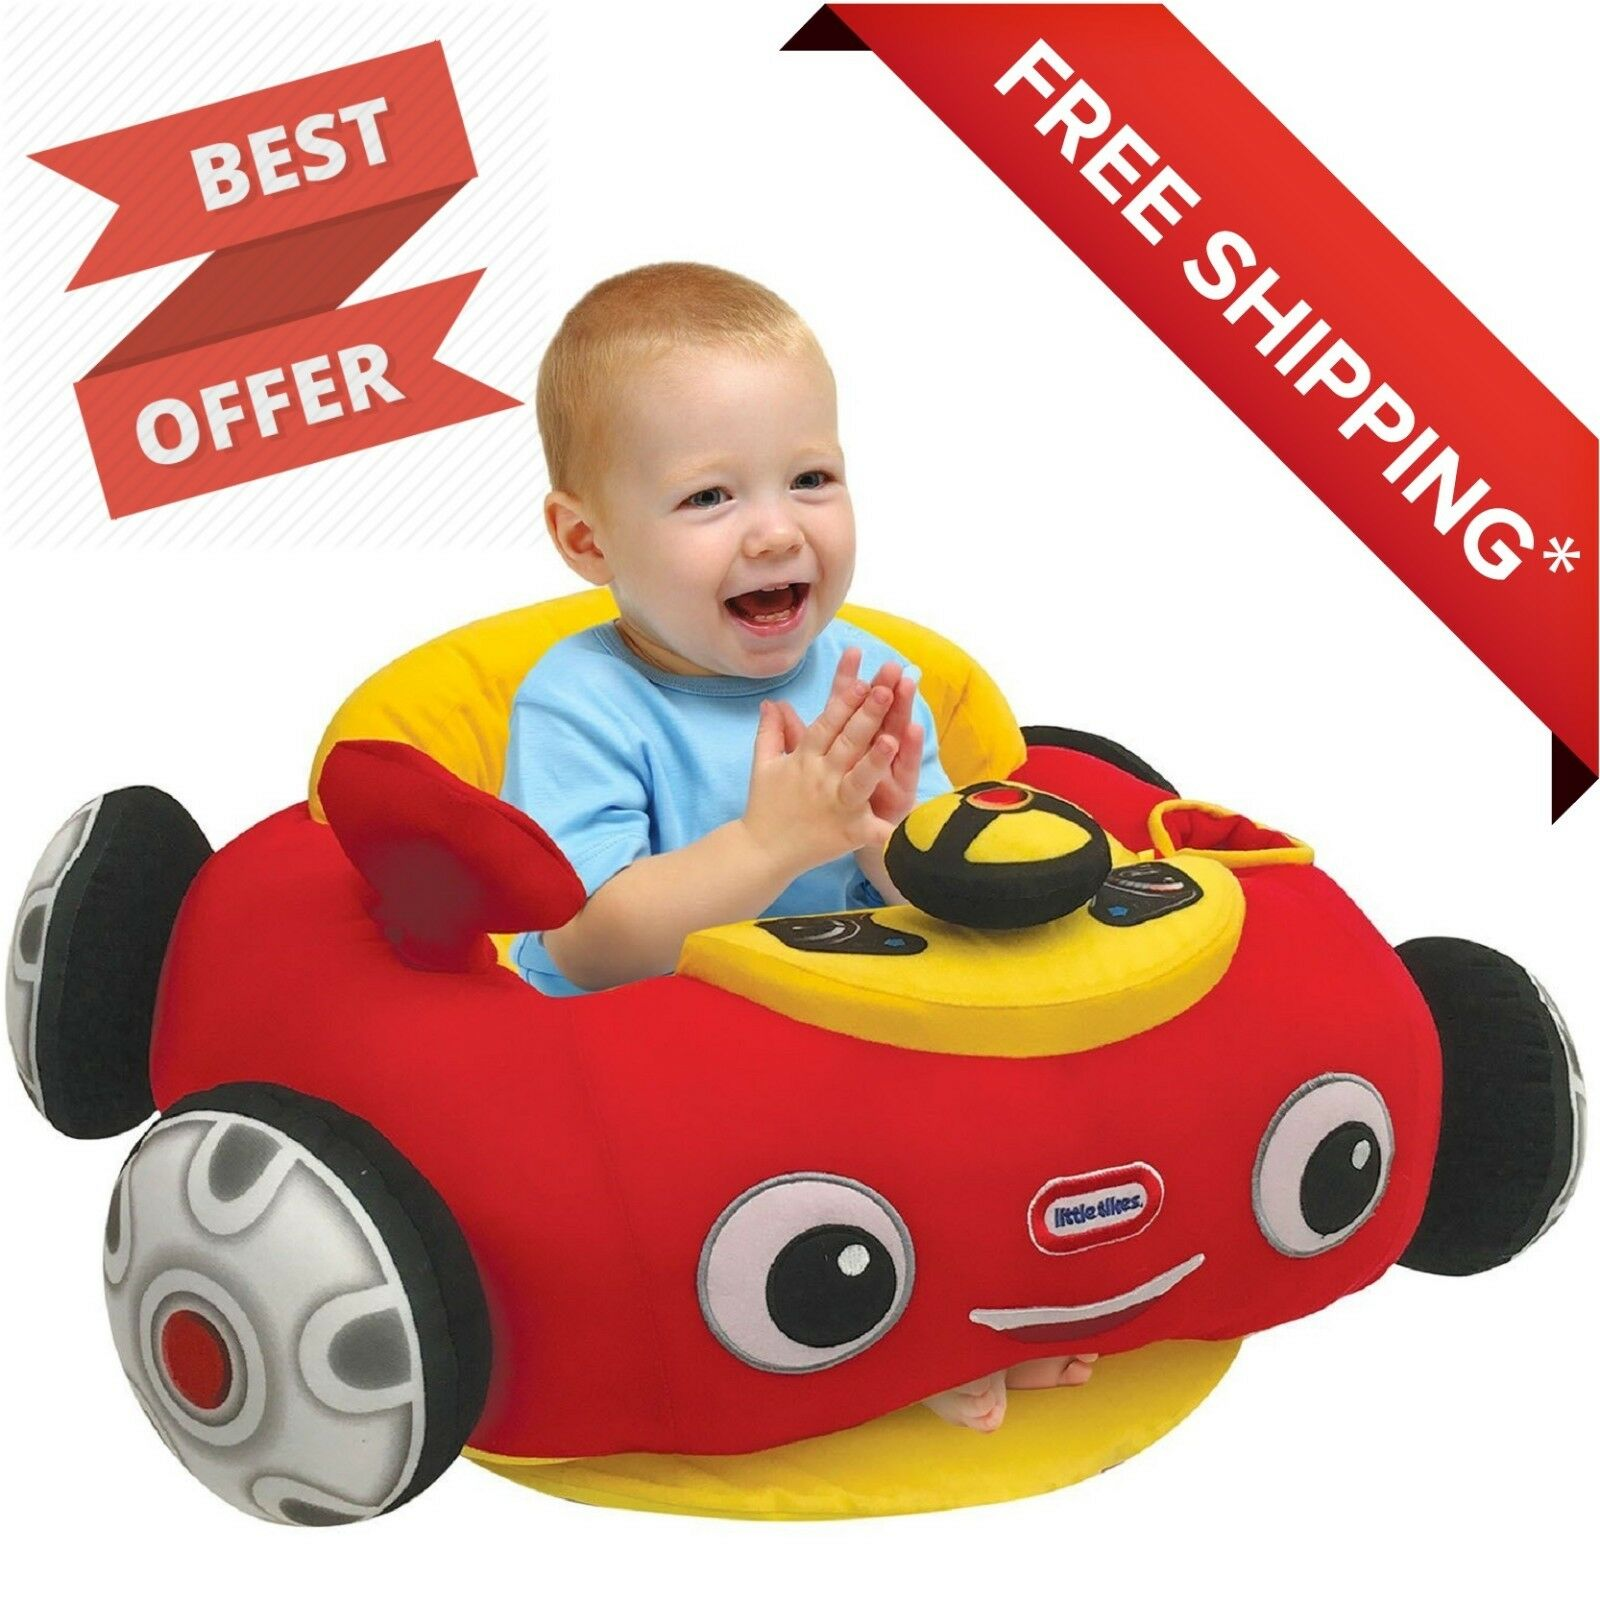 Little Tikes Cozy Coupe Infant Plush Floor Chair NEW